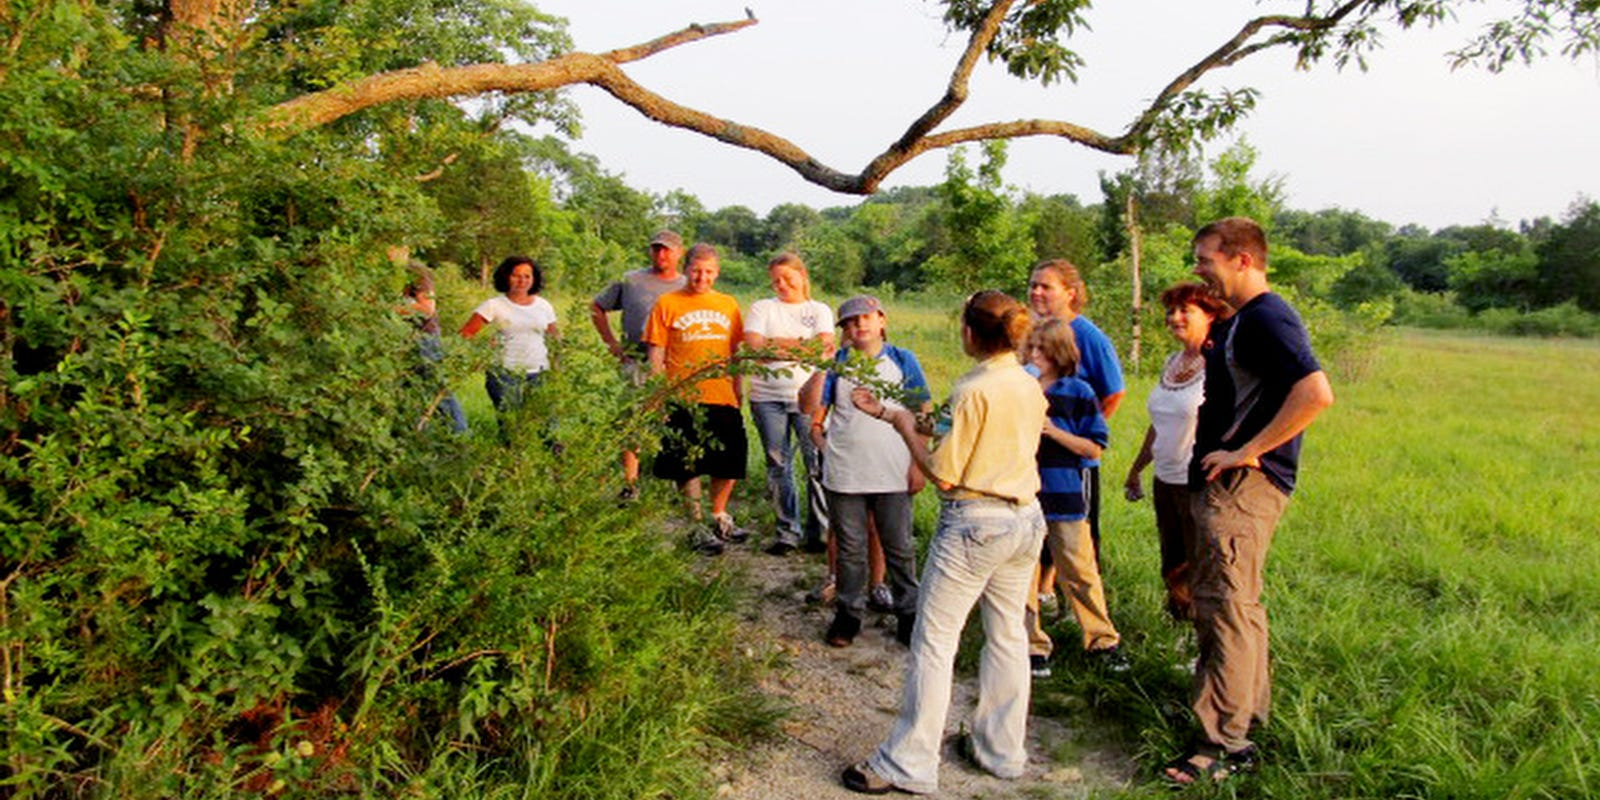 Nashville hikes: Get outside, learn about nature with these events